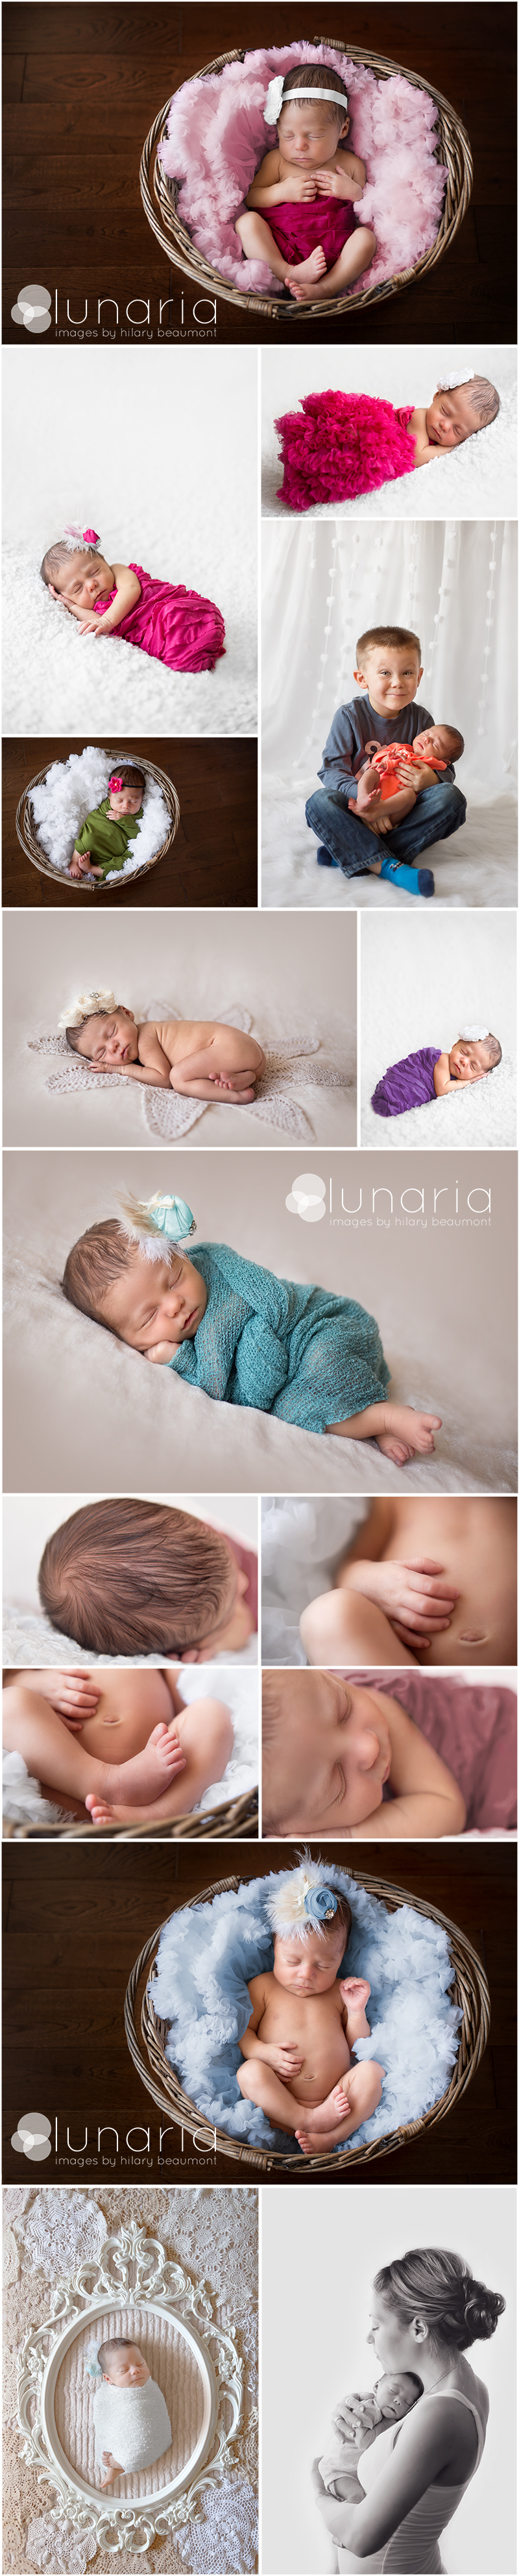 Baby Alexandra's First Photo Shoot